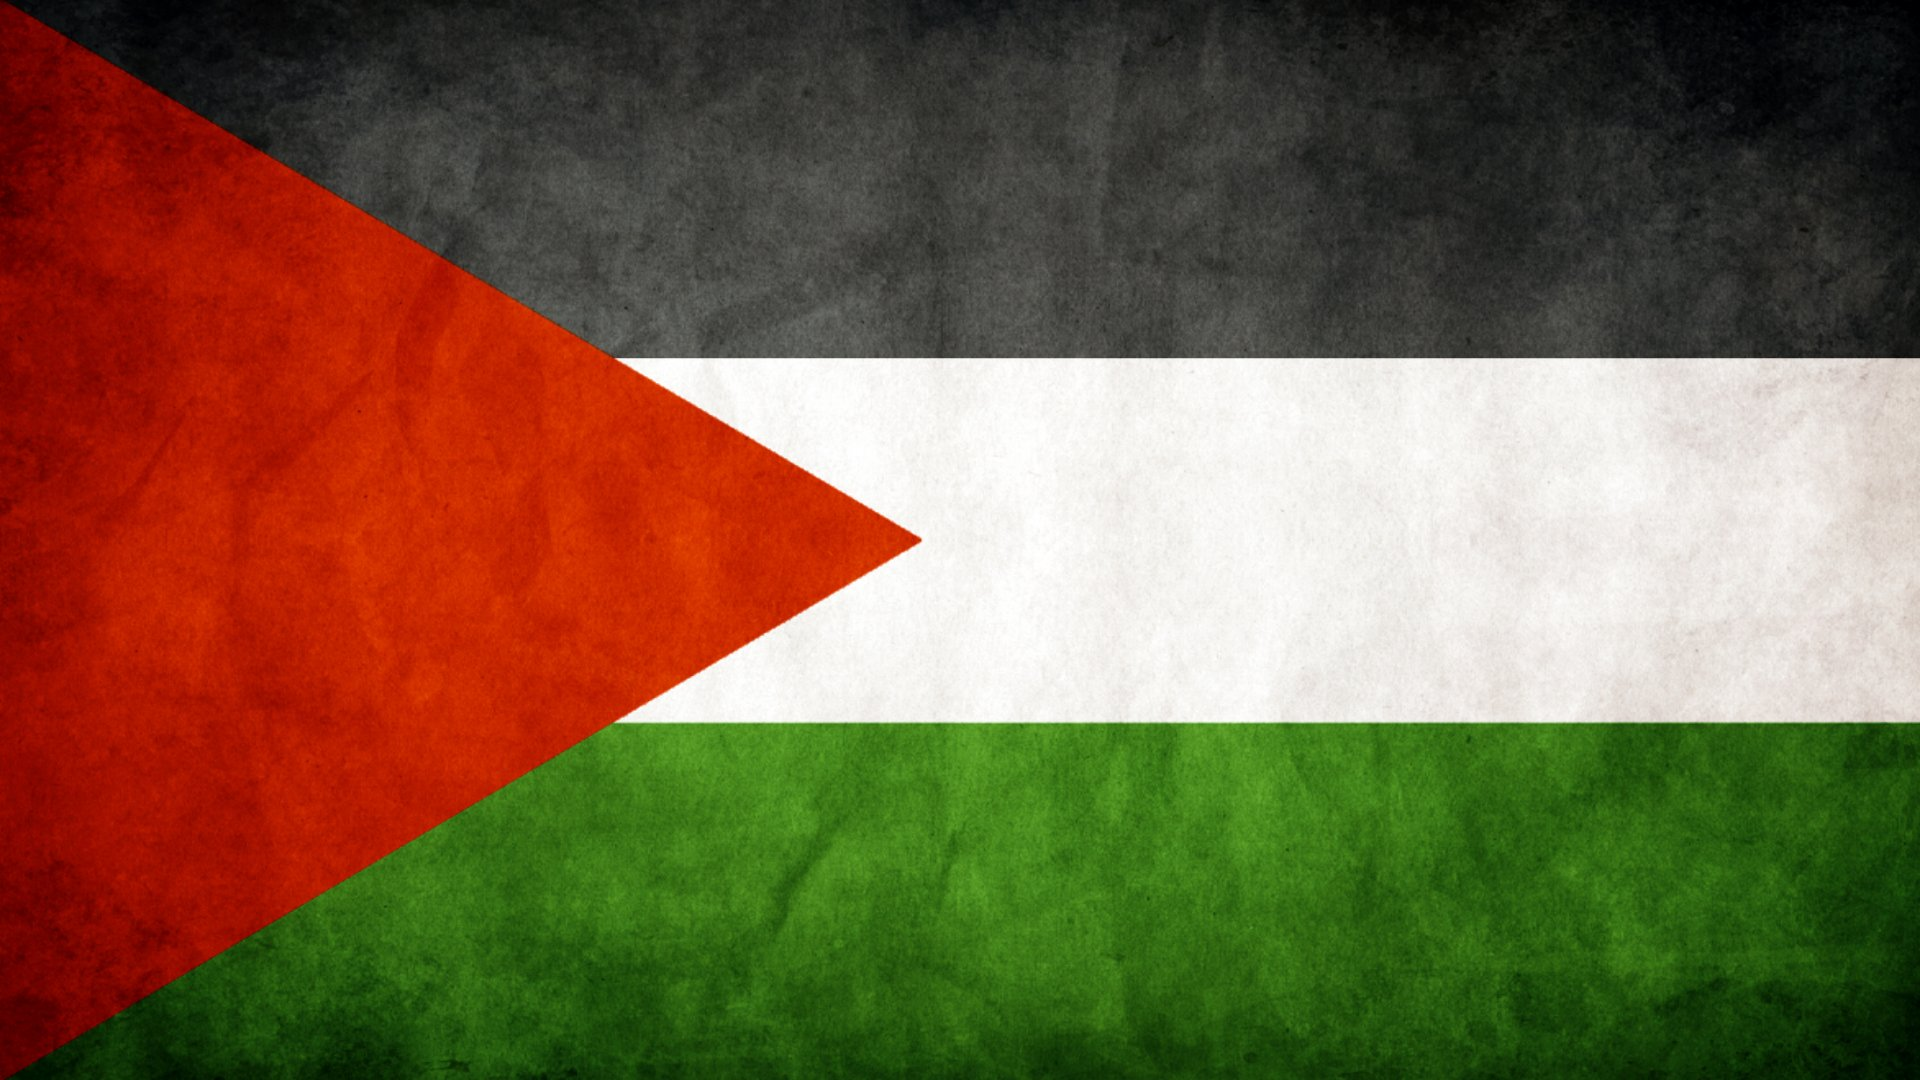 Palestine Flag Exclusive HD Wallpapers 6856 1920x1080